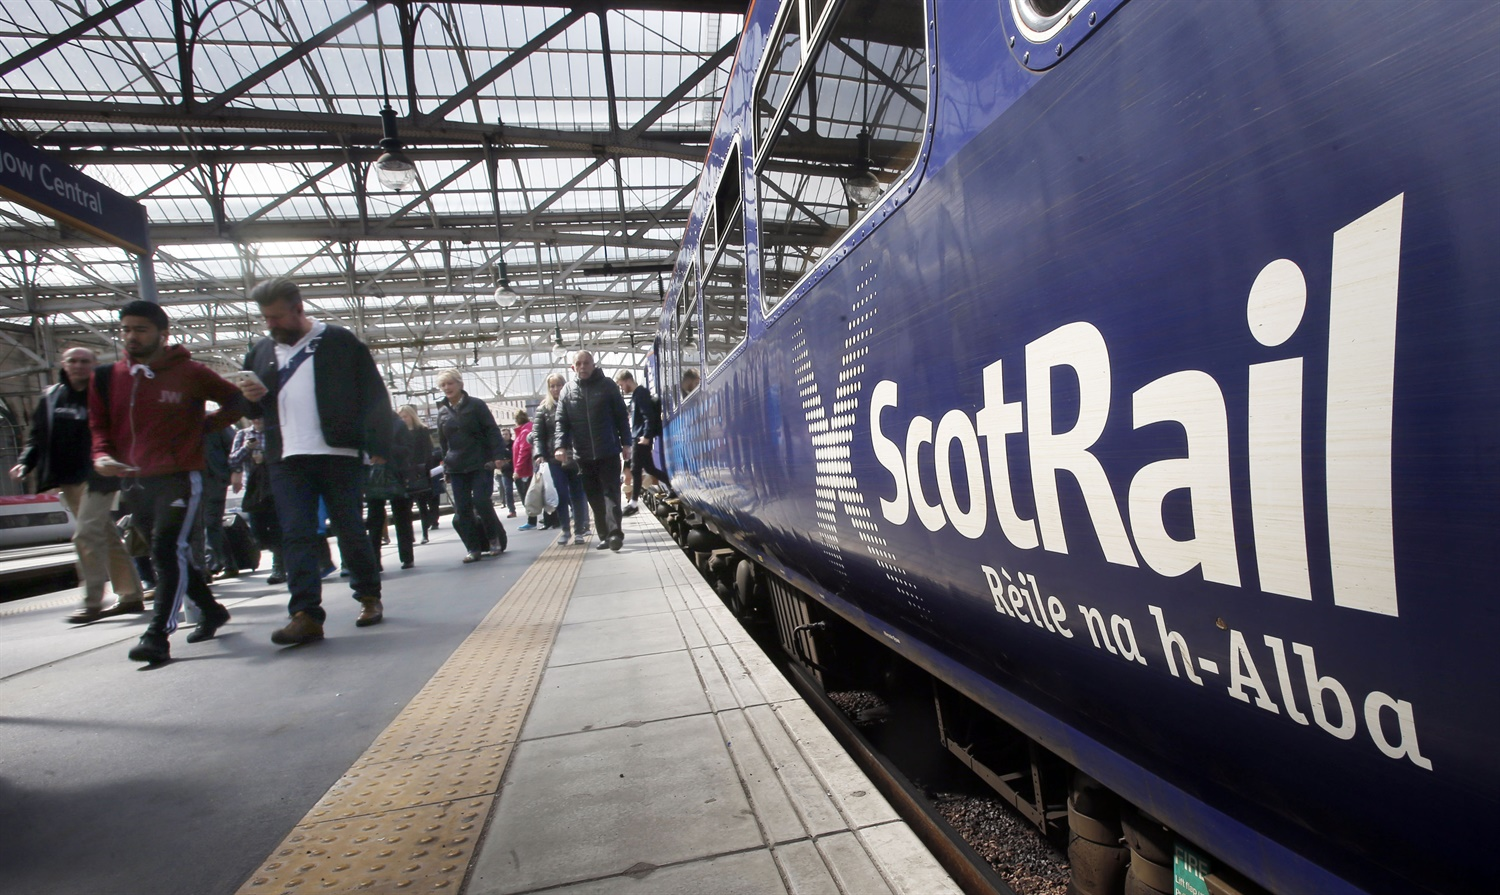 Robroyston first new station to be funded through Scottish Stations Fund